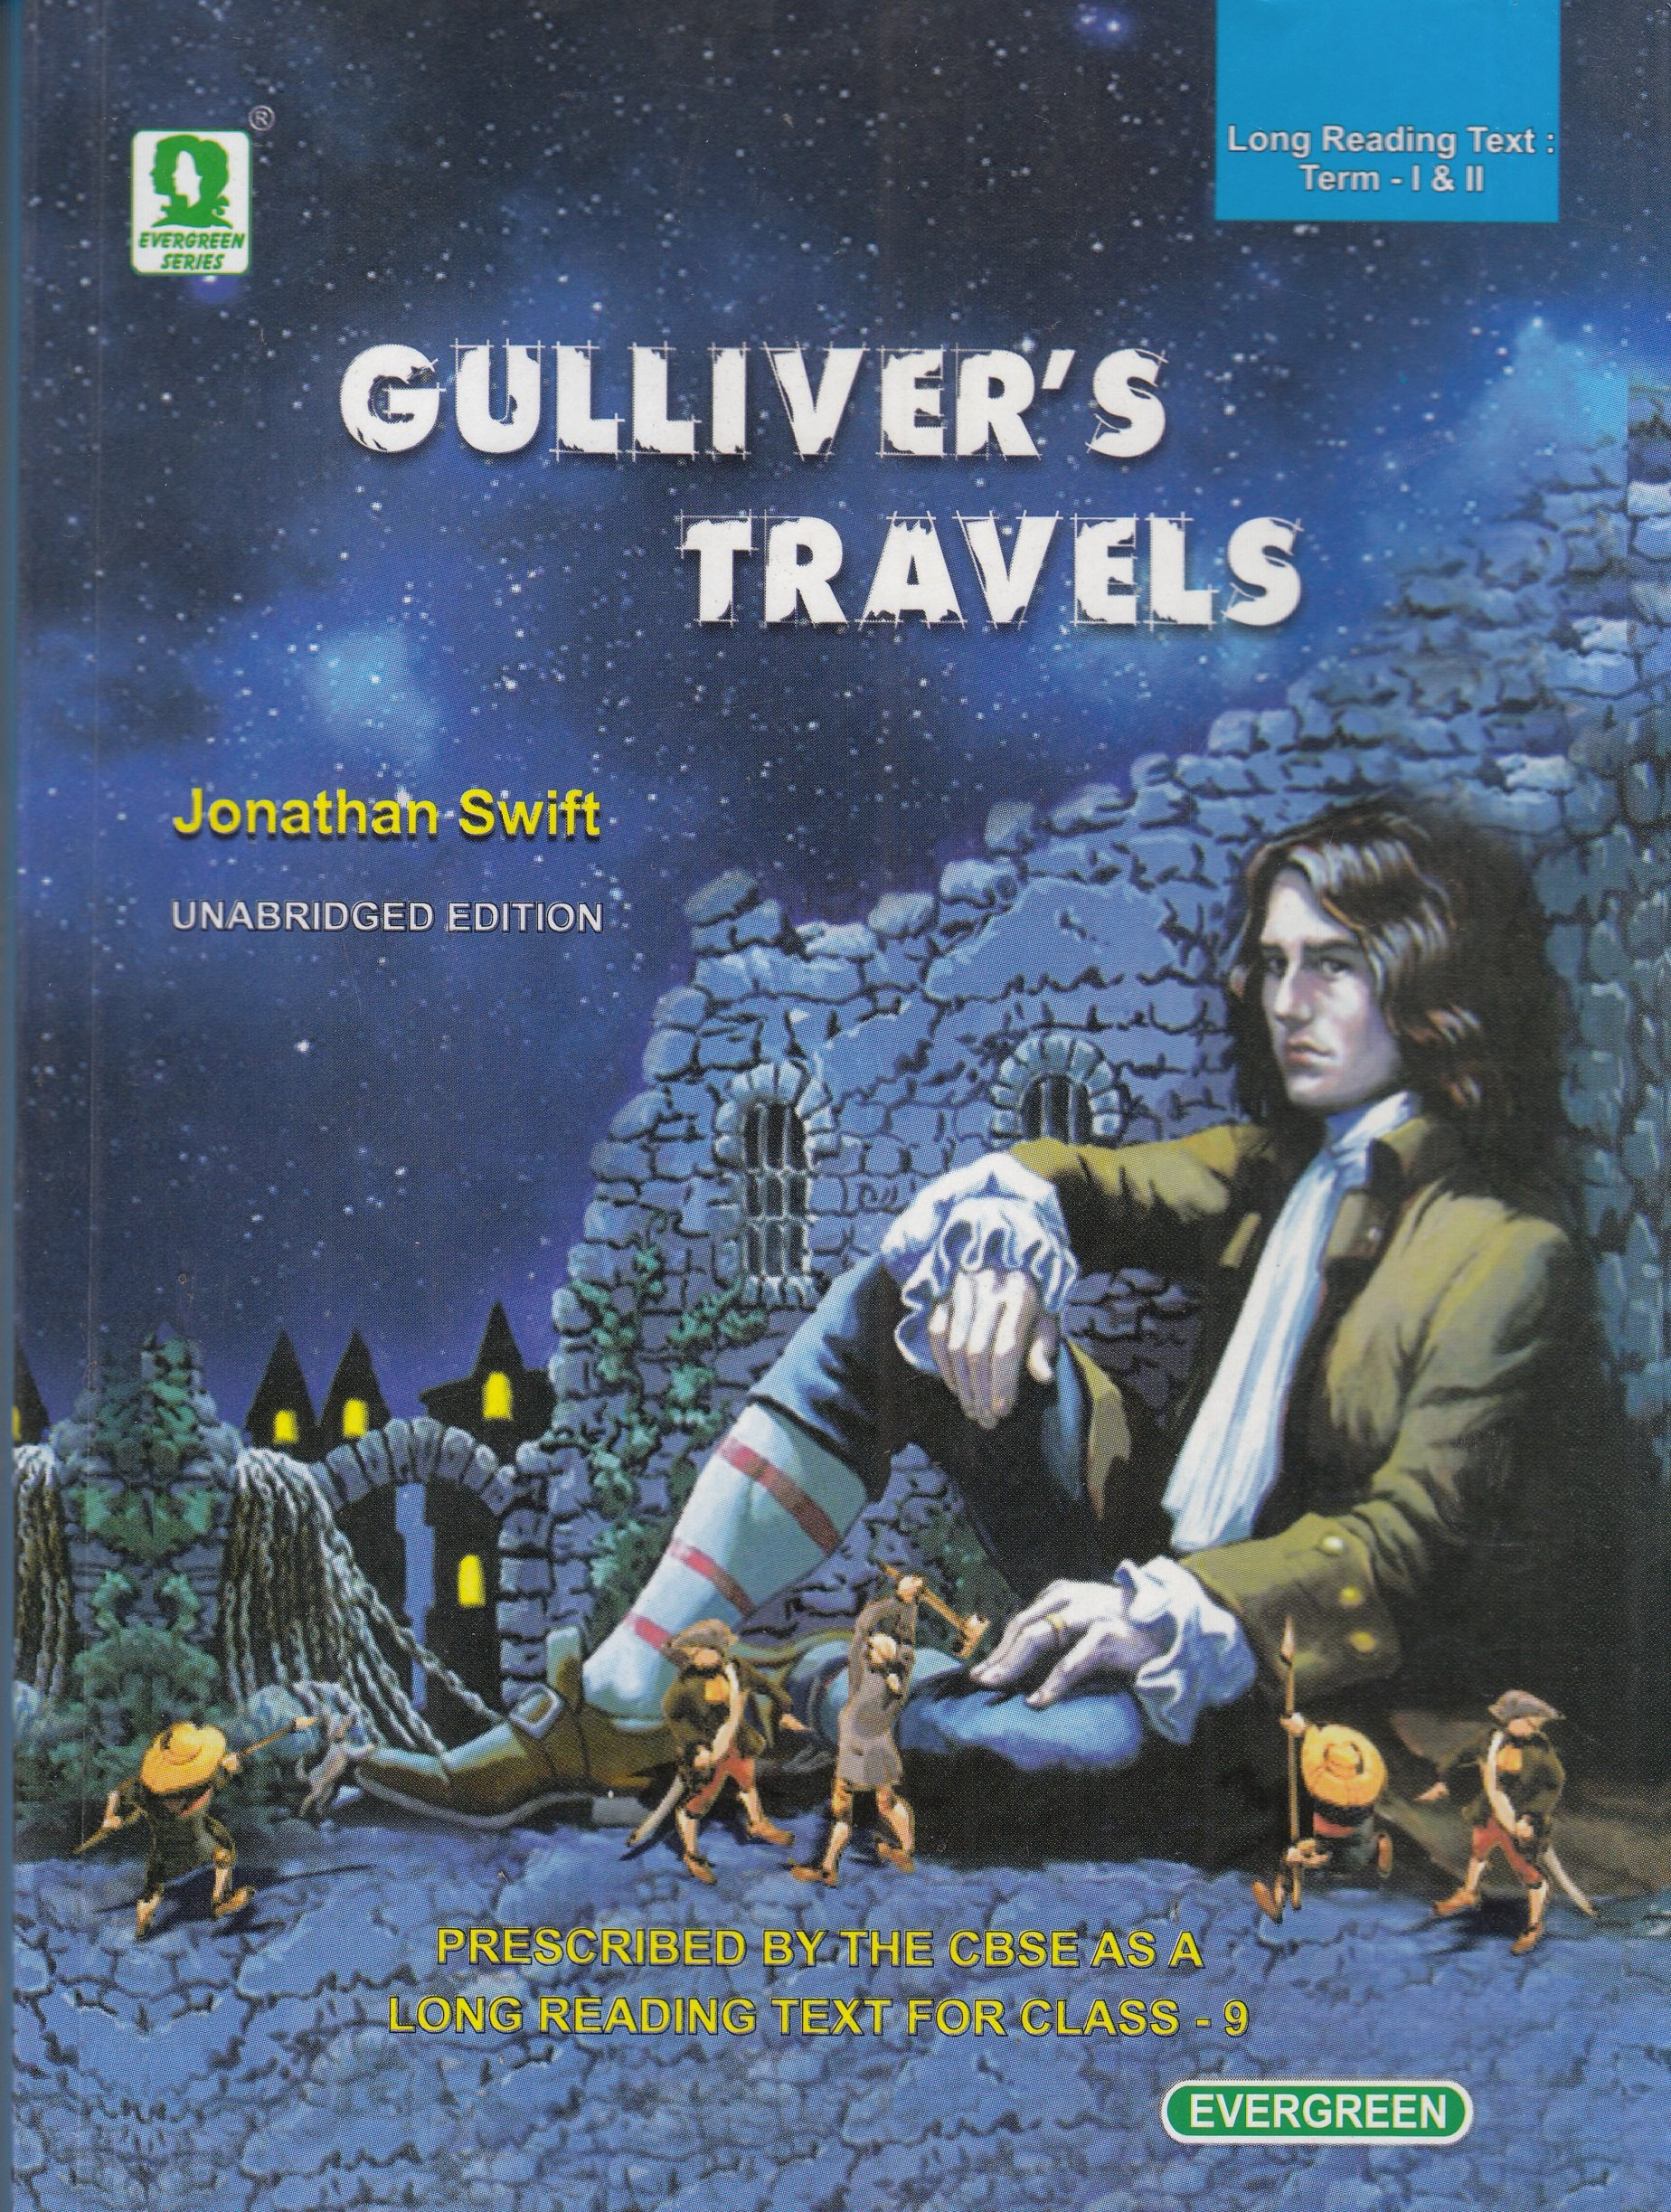 Gullivers travels full movie in tamil download